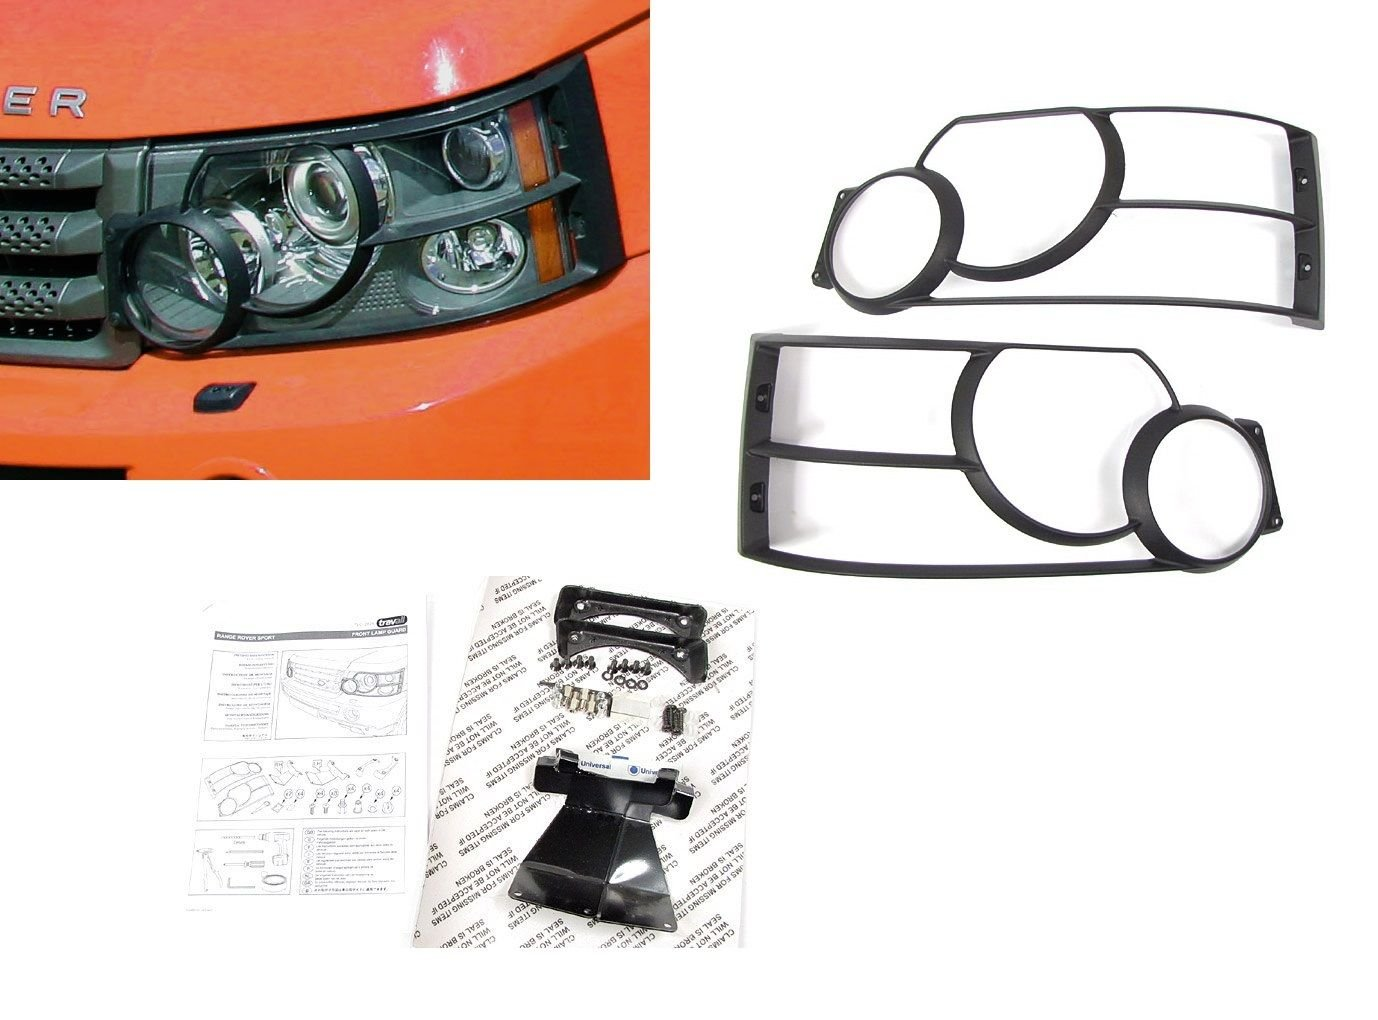 LAND ROVER RANGE ROVER SPORT L320 2005-2009 FRONT LIGHT GUARD SET PART: VUB501930